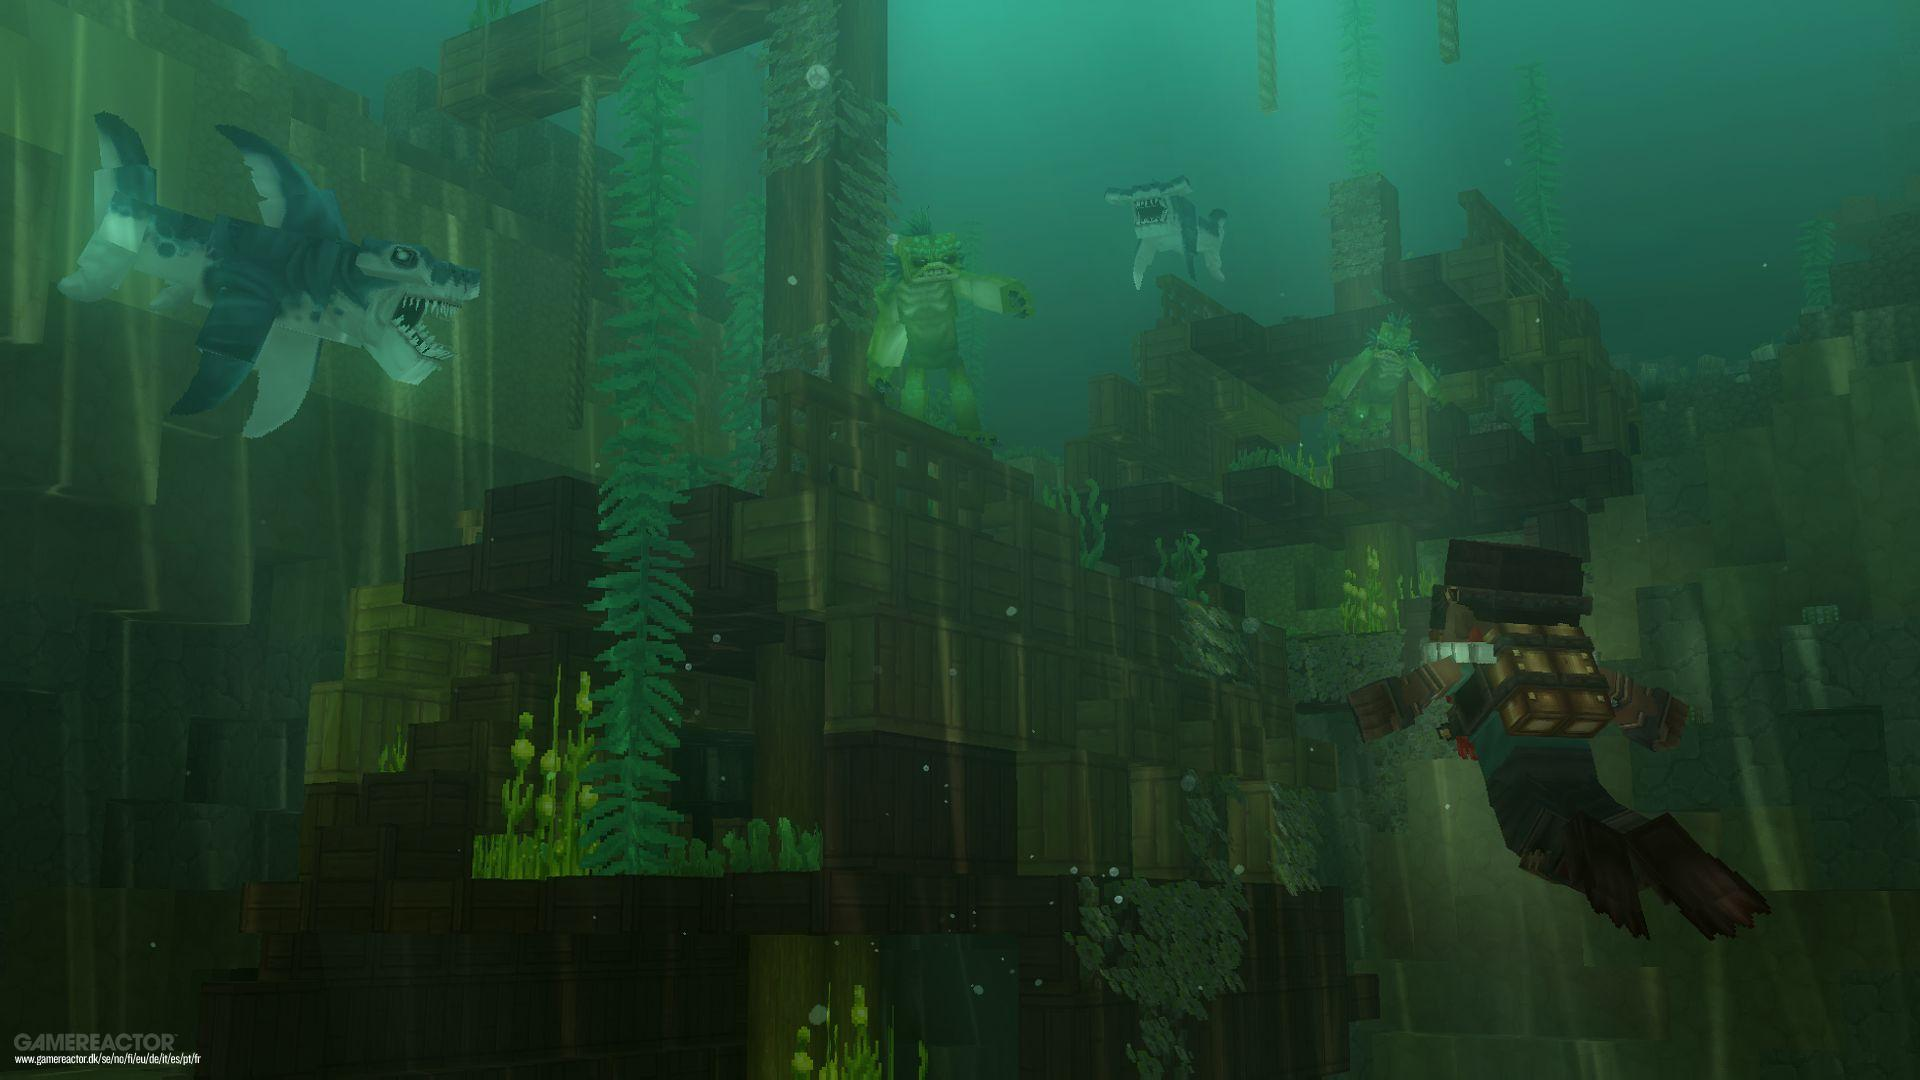 Pictures of Minecraft-inspired Hytale unveiled by Hypixel 11/11